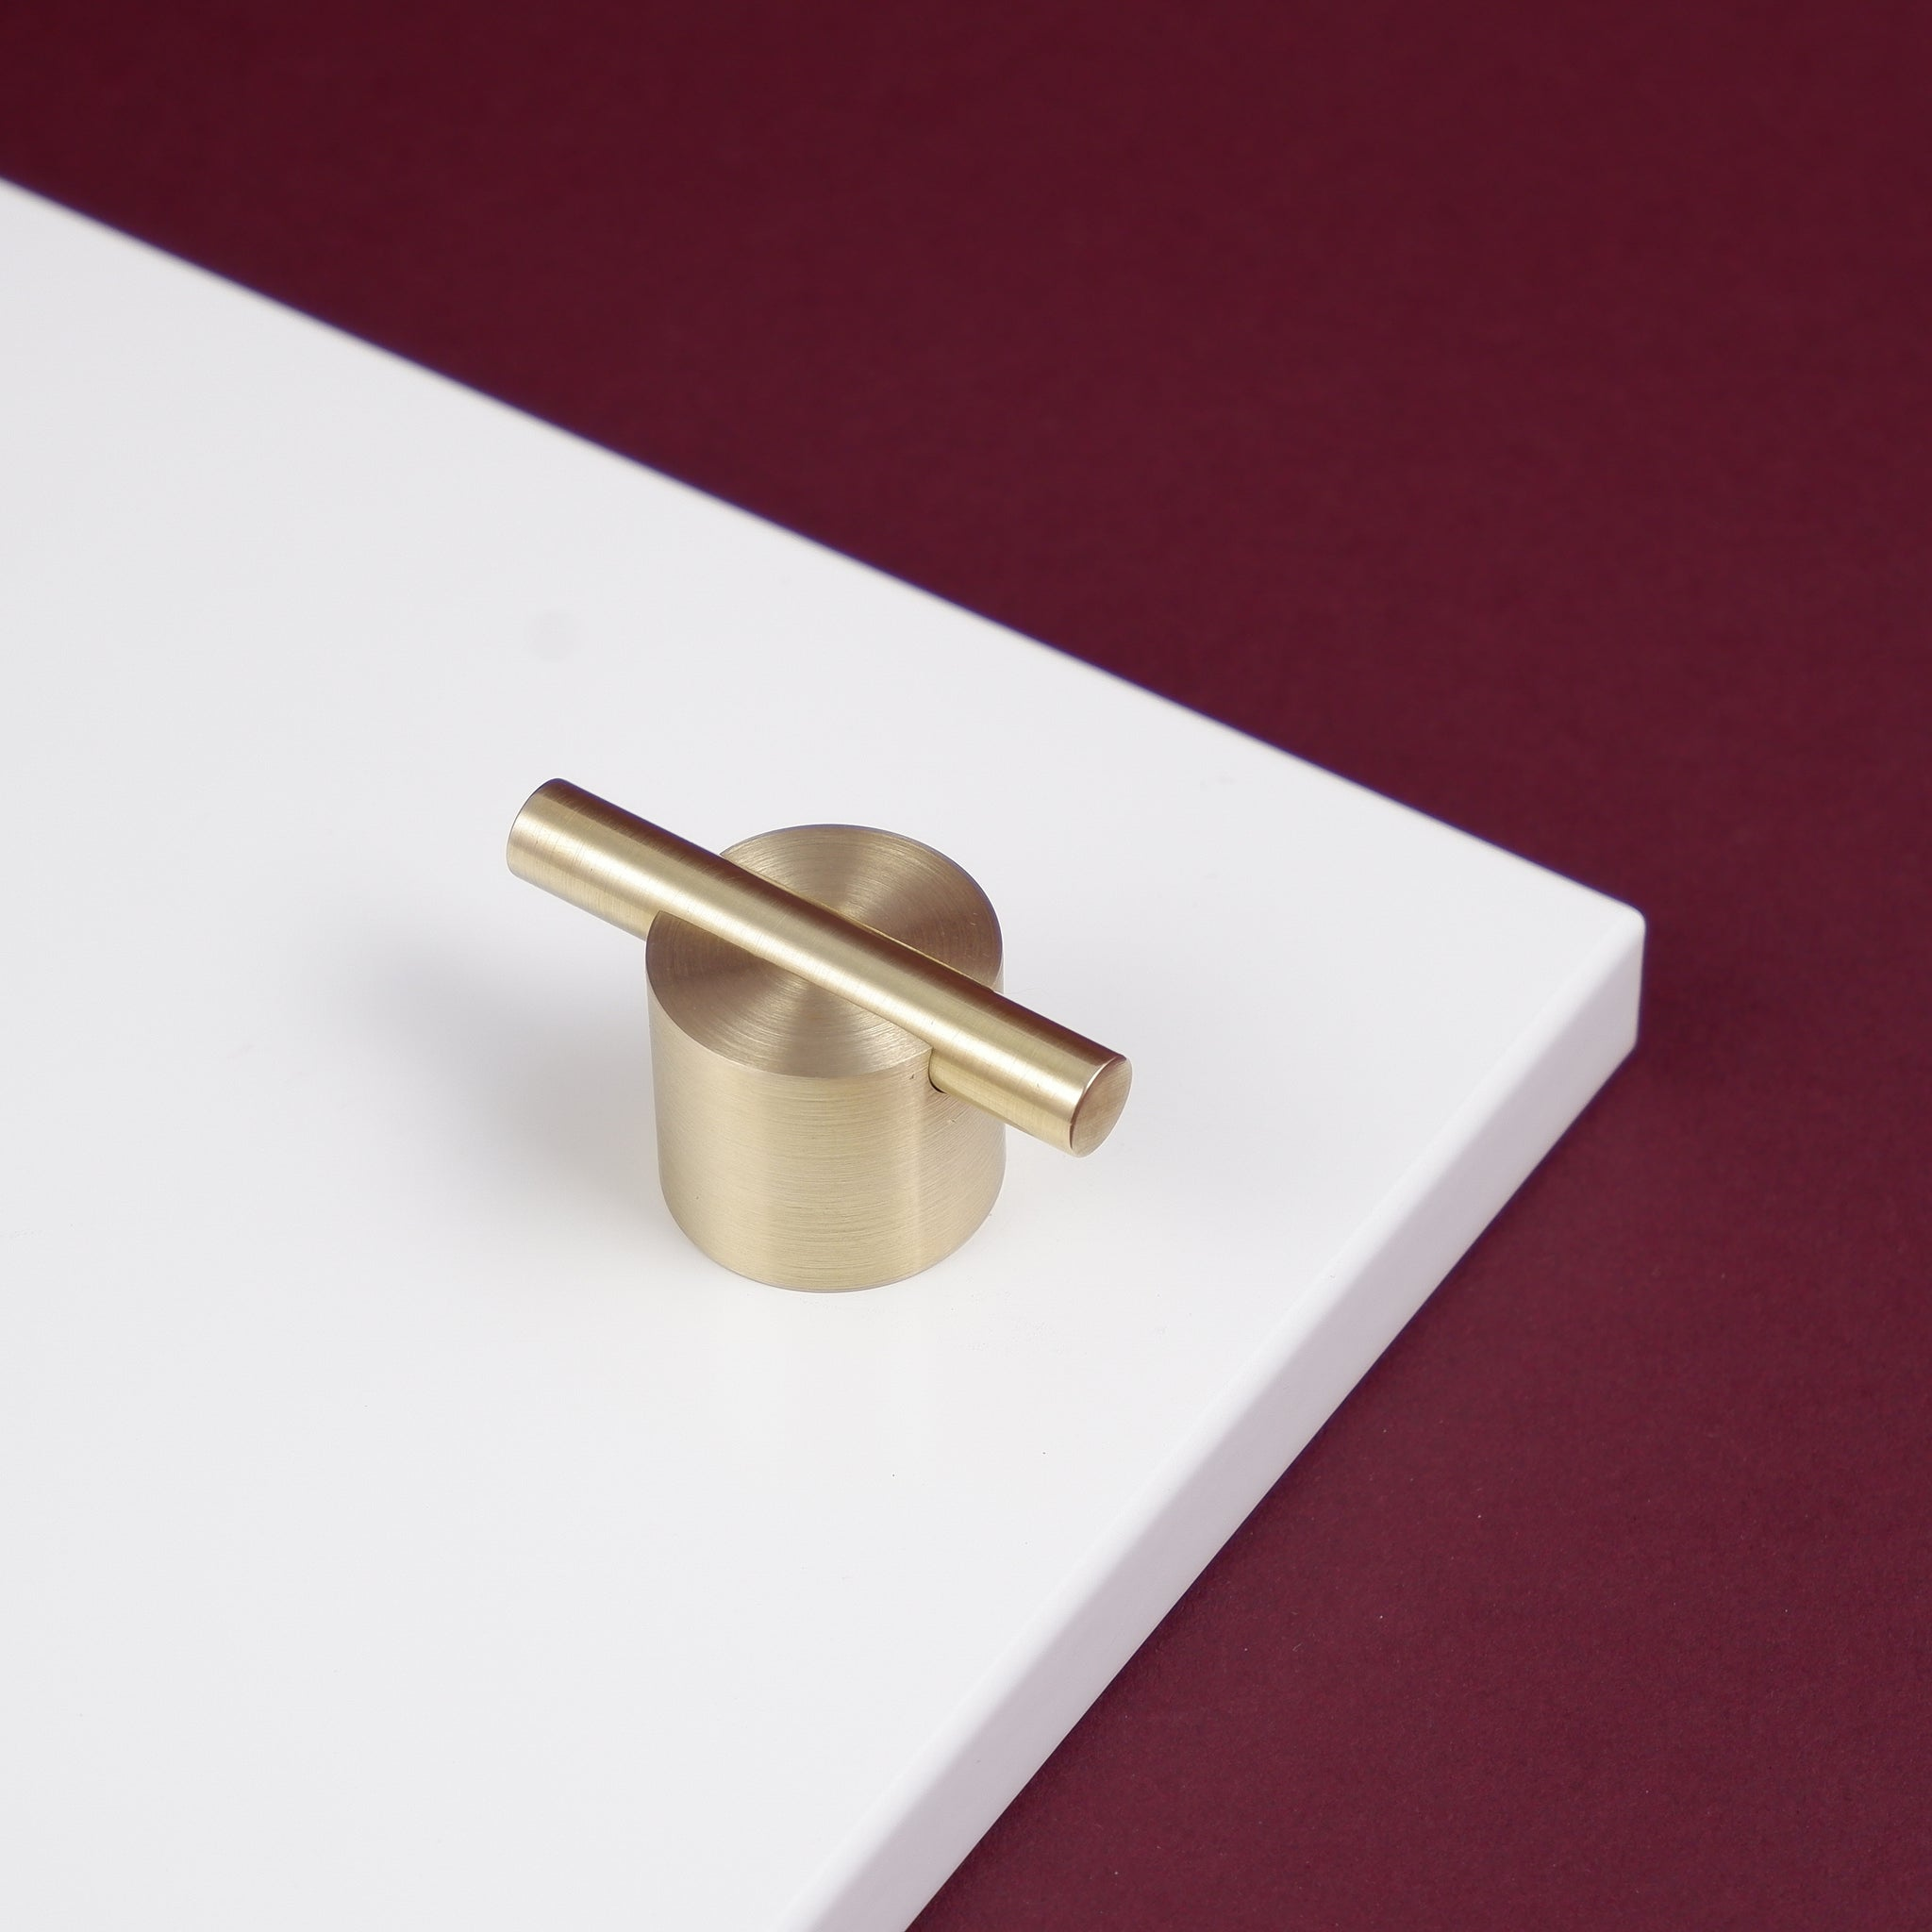 Chipmaster Brushed satin brass kitchen handle